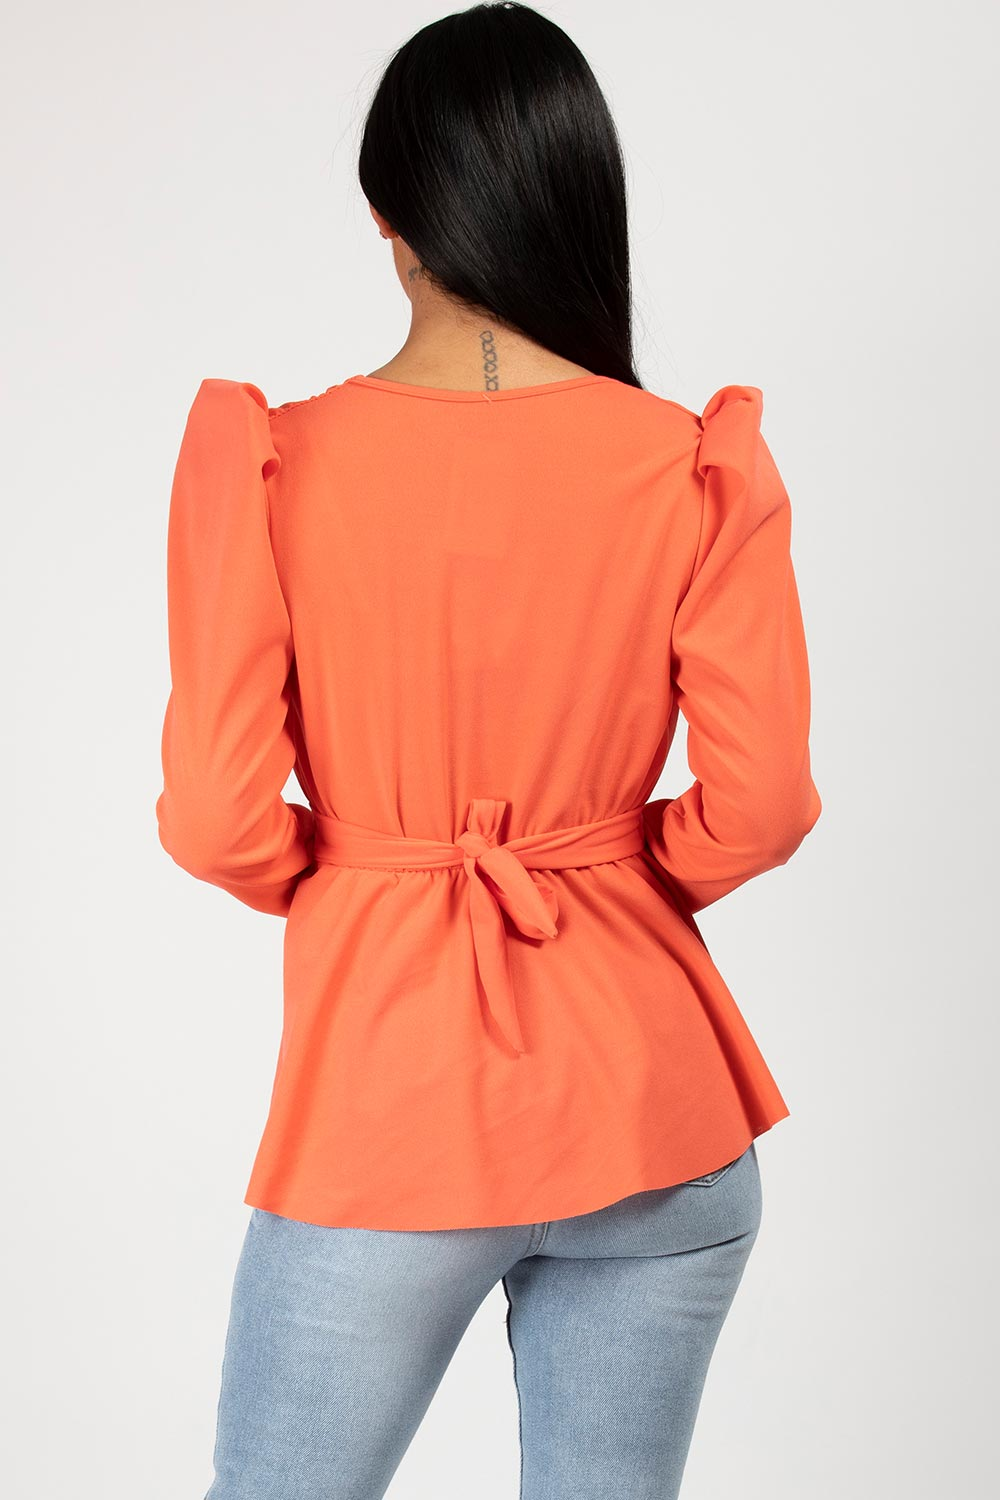 coral cc buckle long puff sleeve top